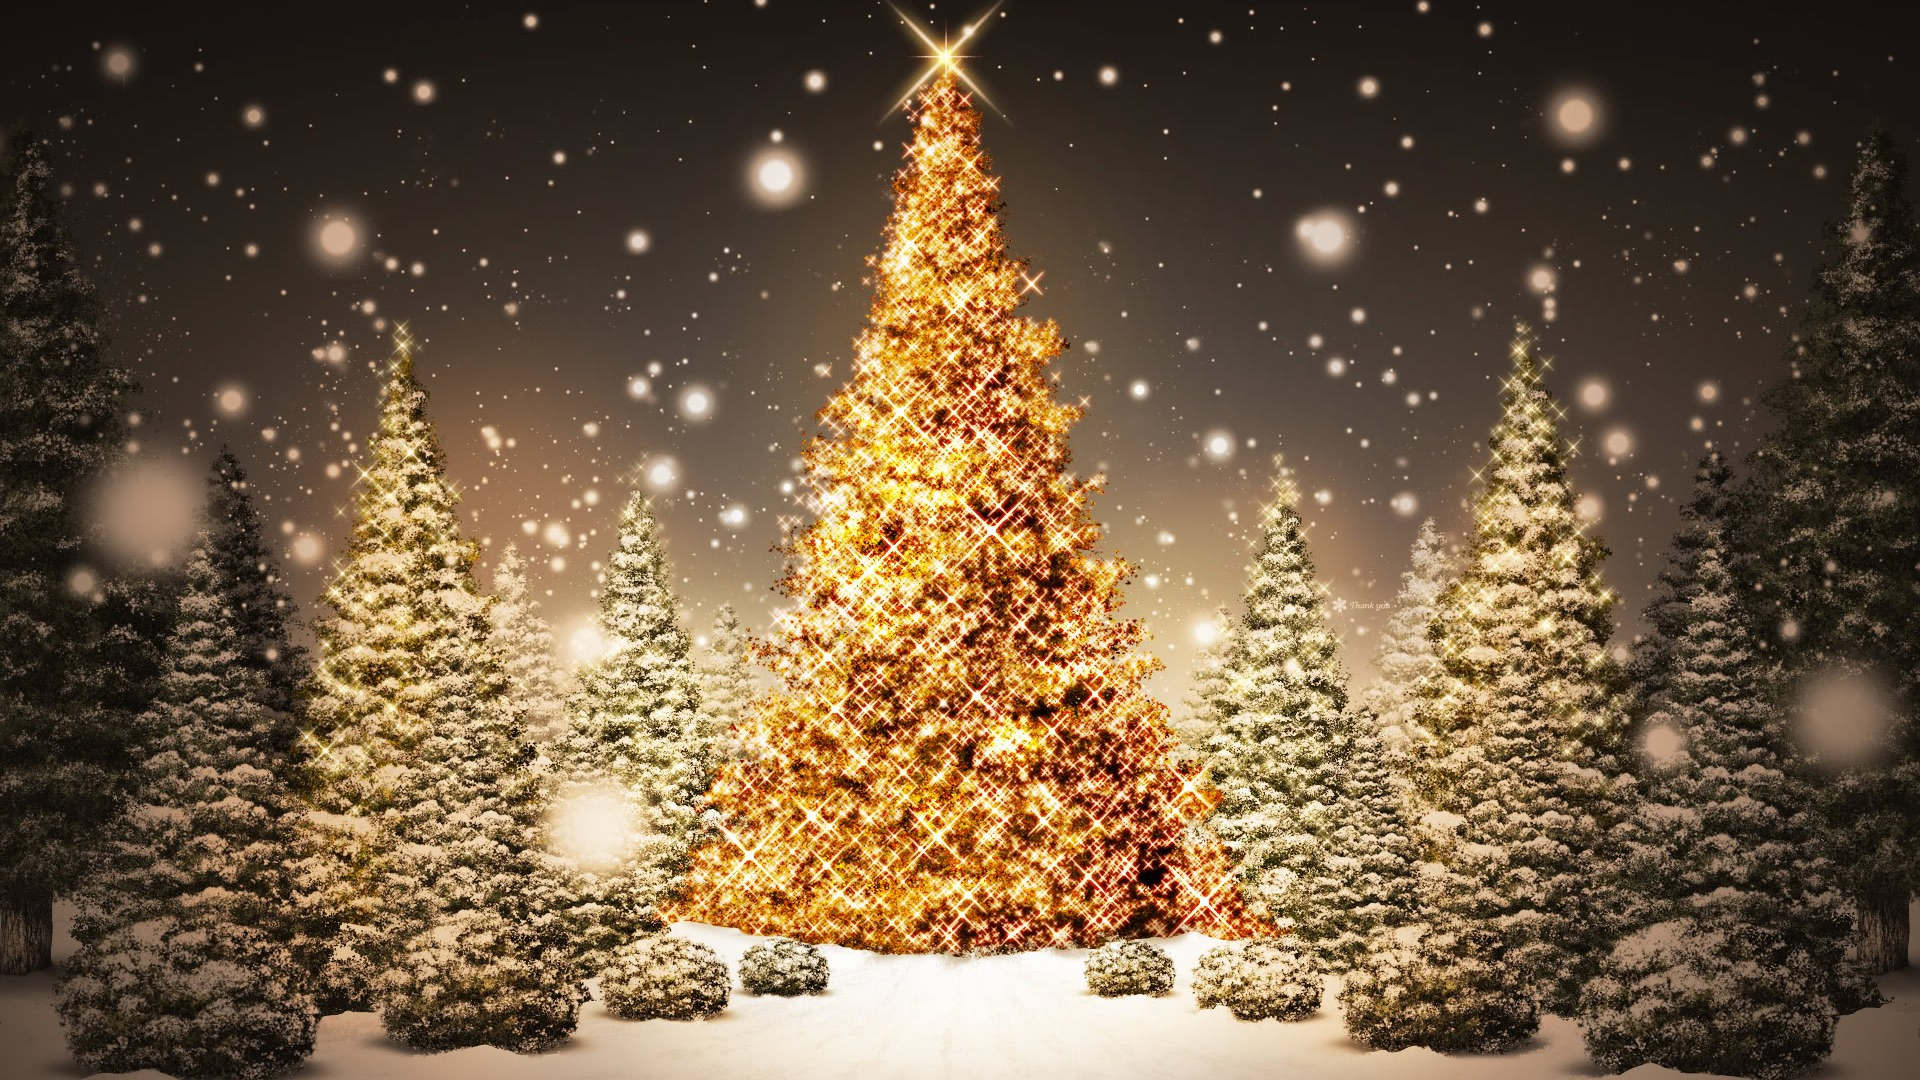 30+ Christmas HD Wallpapers, Ringtones And Apps To Deck